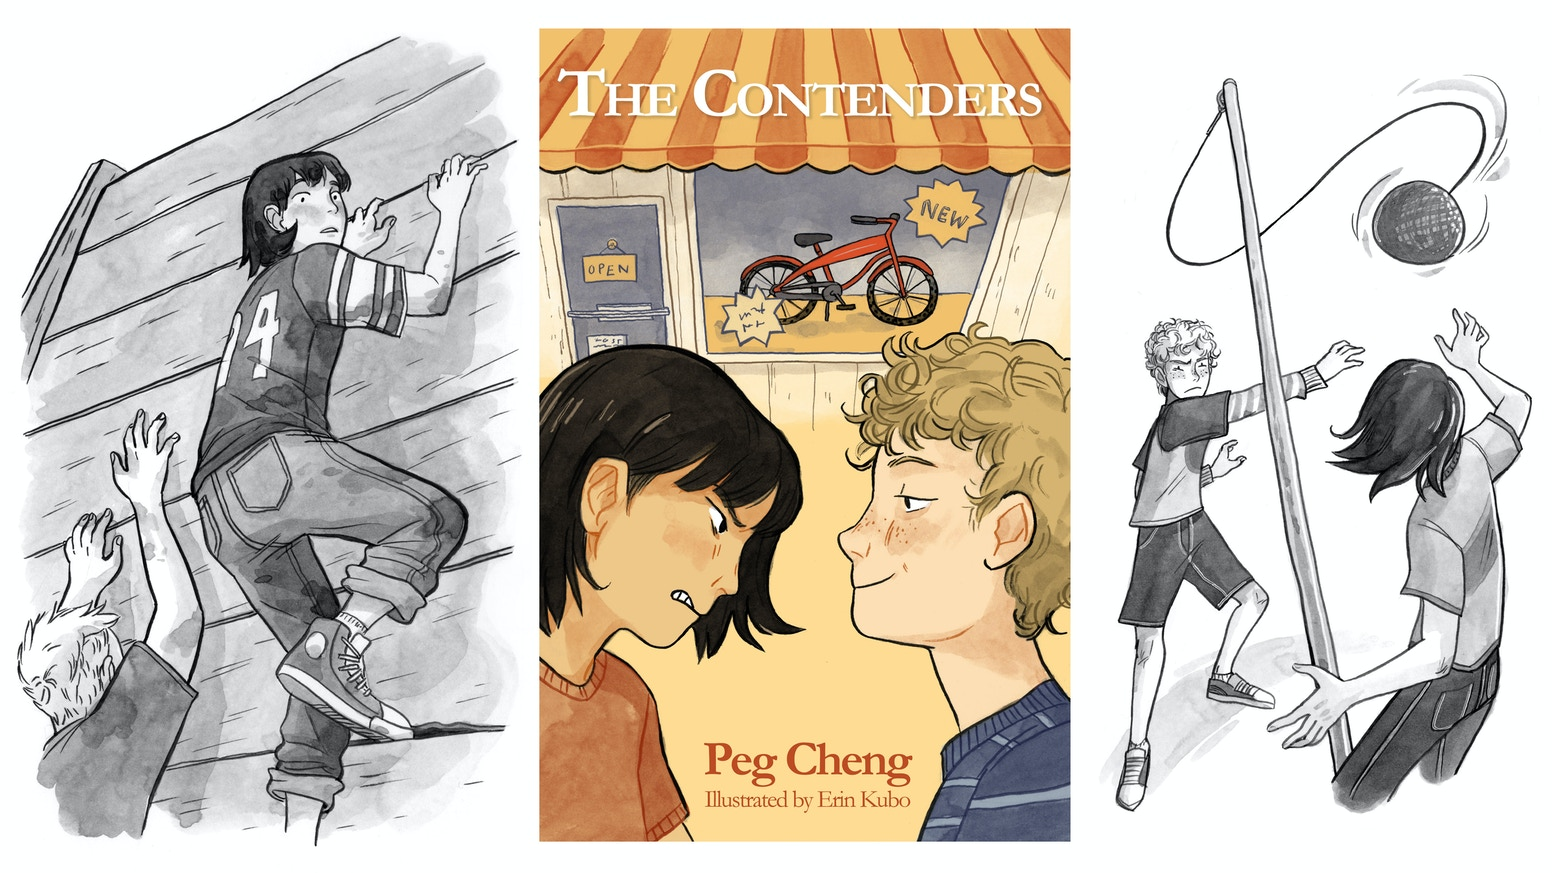 So thrilled that 64 kind humans pledged to make The Contenders illustrated edition happen! Thanks, everyone!!! Follow my blog below to see what's happening with the printing of the book and find out when and where you can buy your own copy in 2020.